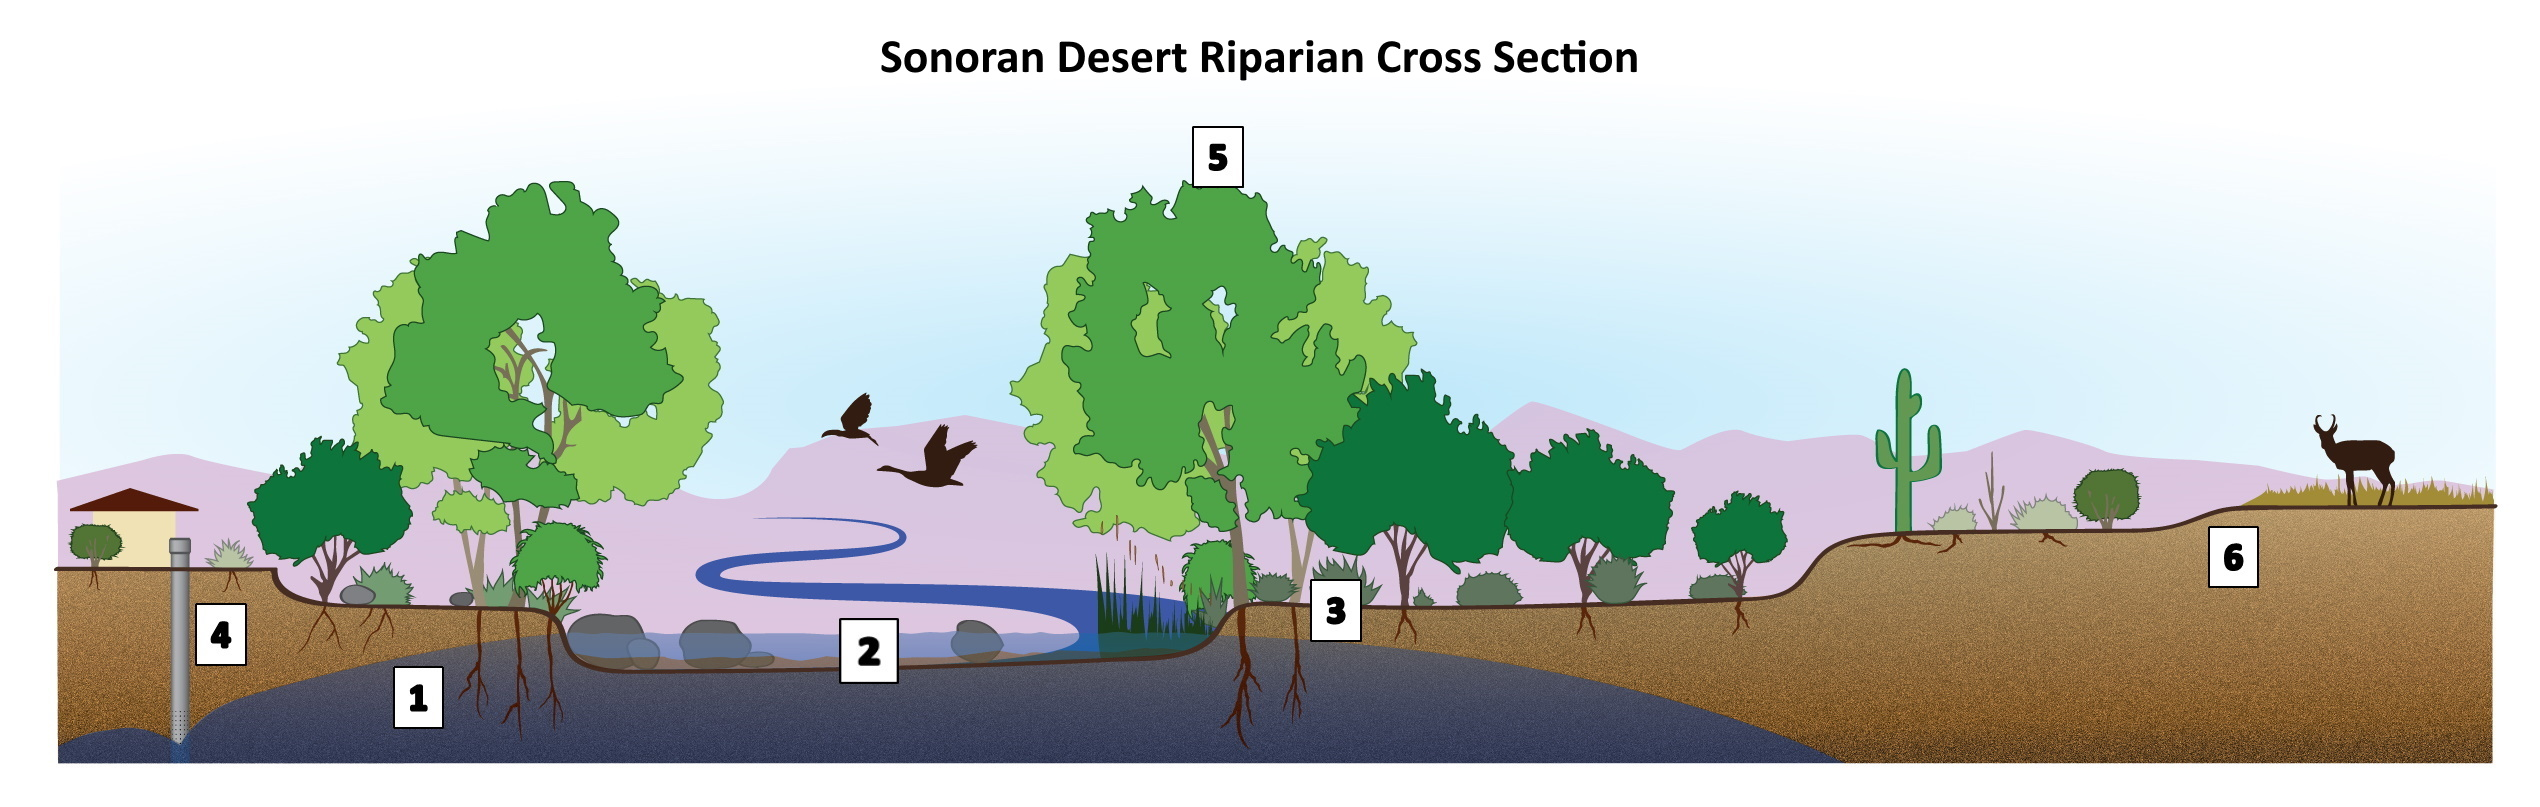 DesertRiparianSectionGraphic NUM-titled 2019-12-9